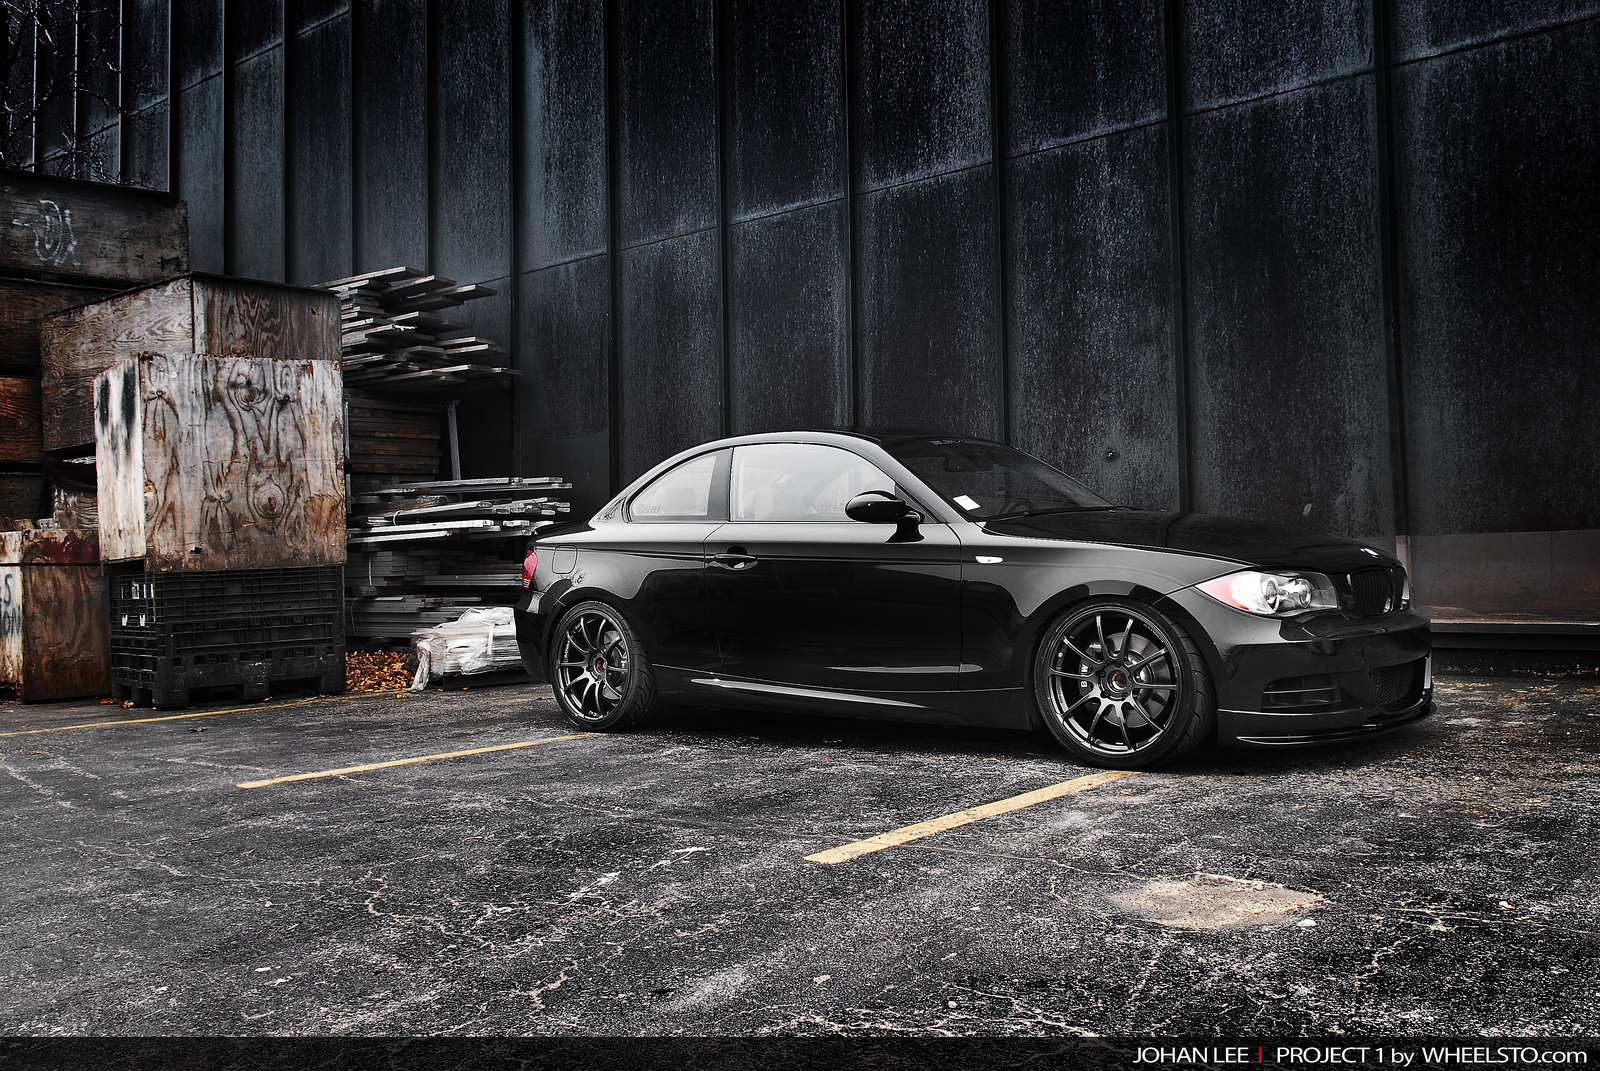 WSTO started to modify a BMW 135i Coupe a couple of months ago and during